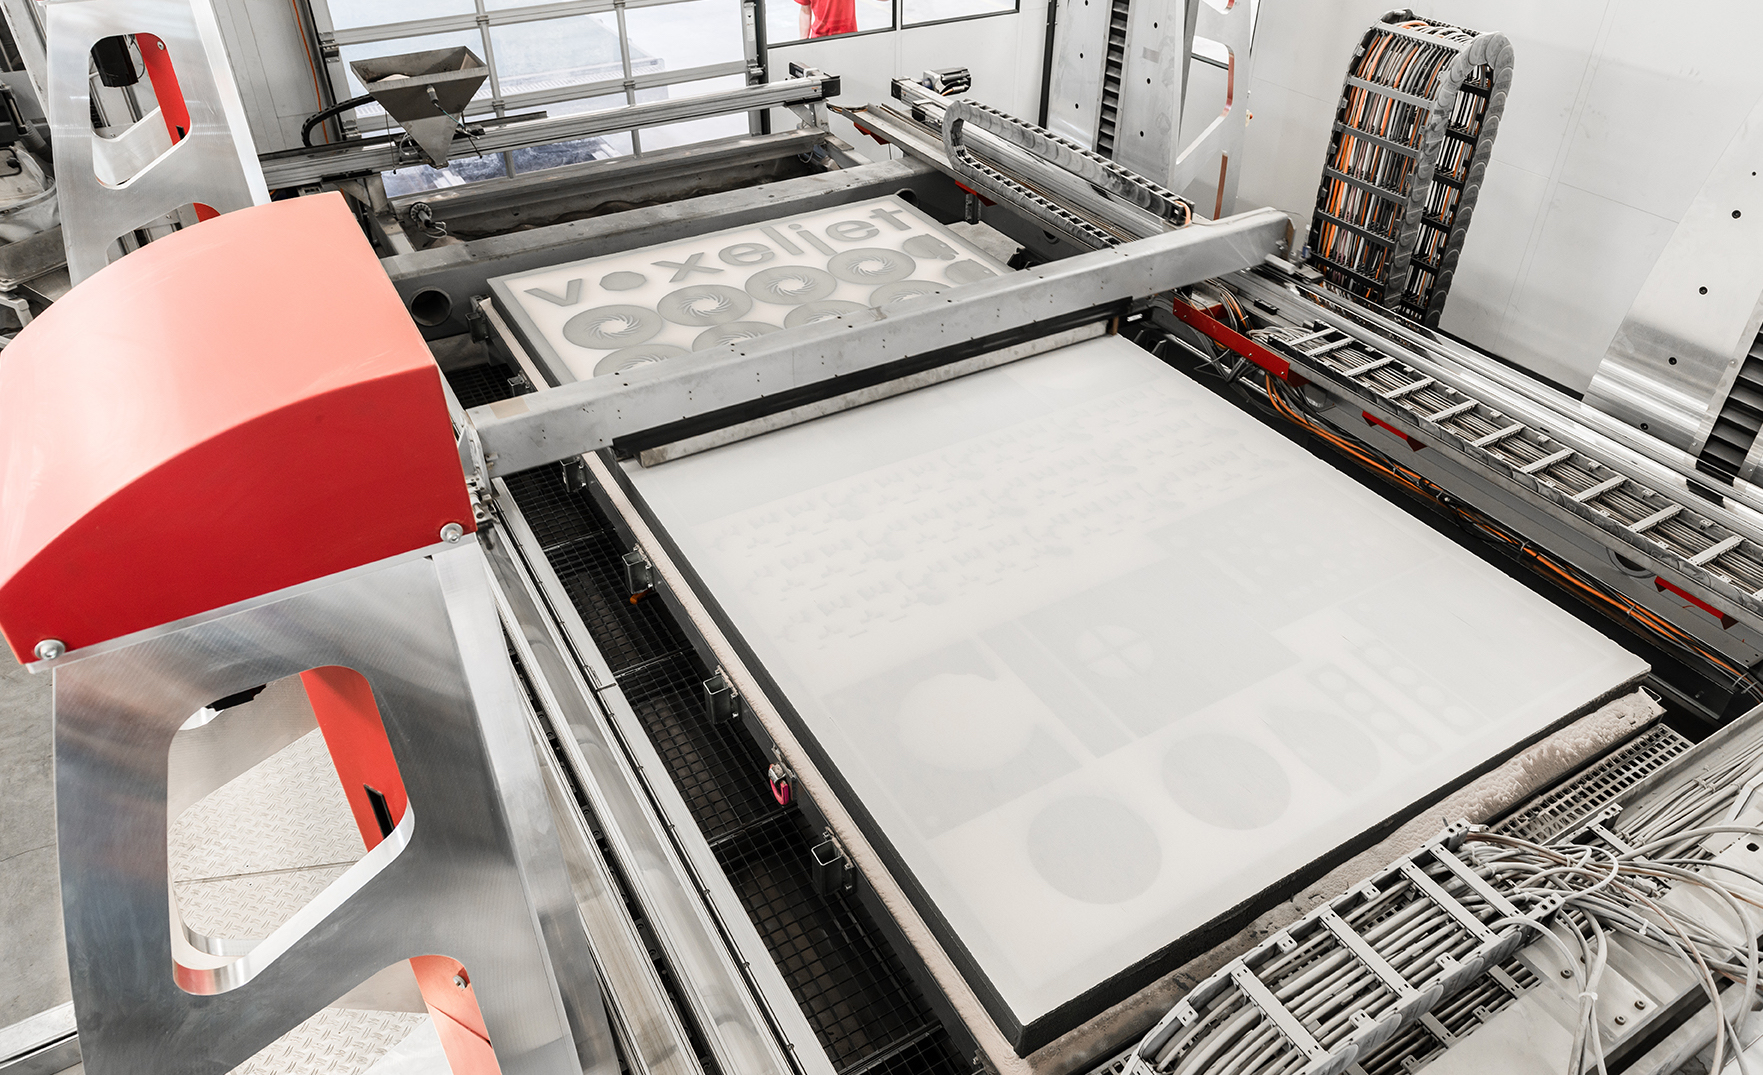 voxeljet's VX4000 is the world's largest industrial printing system for sand molds. Photo via voxeljet